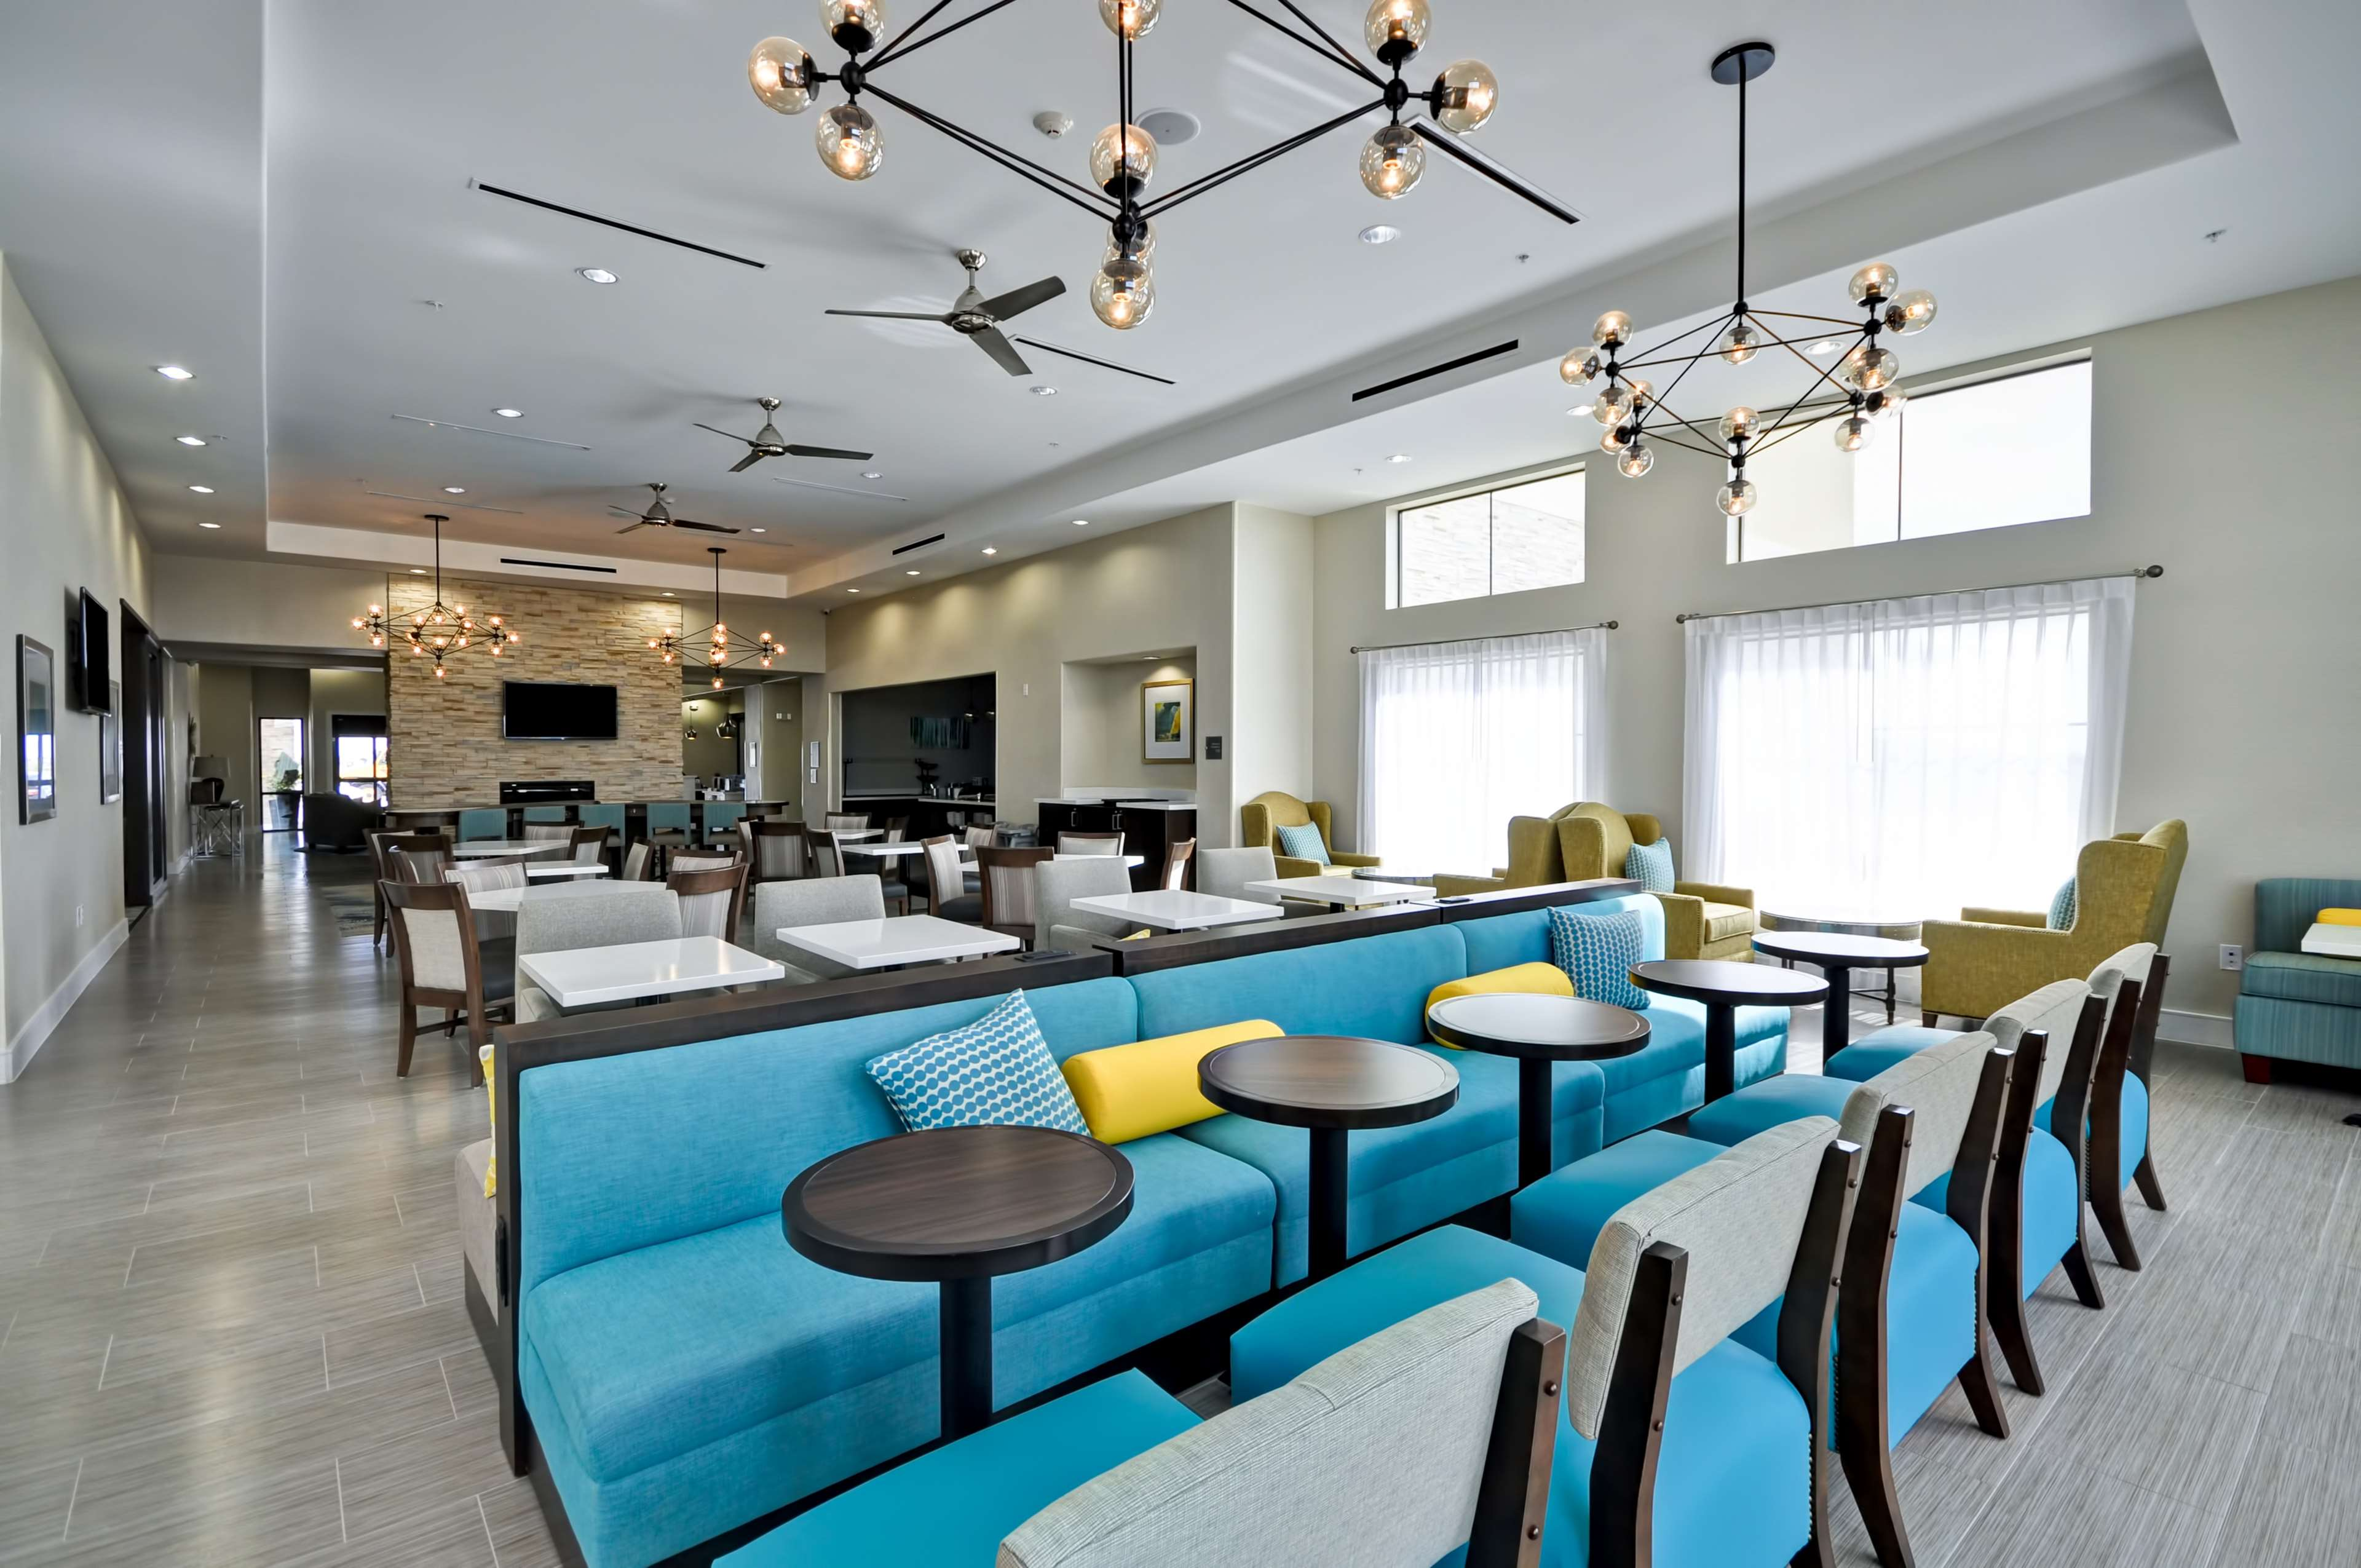 Homewood Suites by Hilton New Braunfels image 26